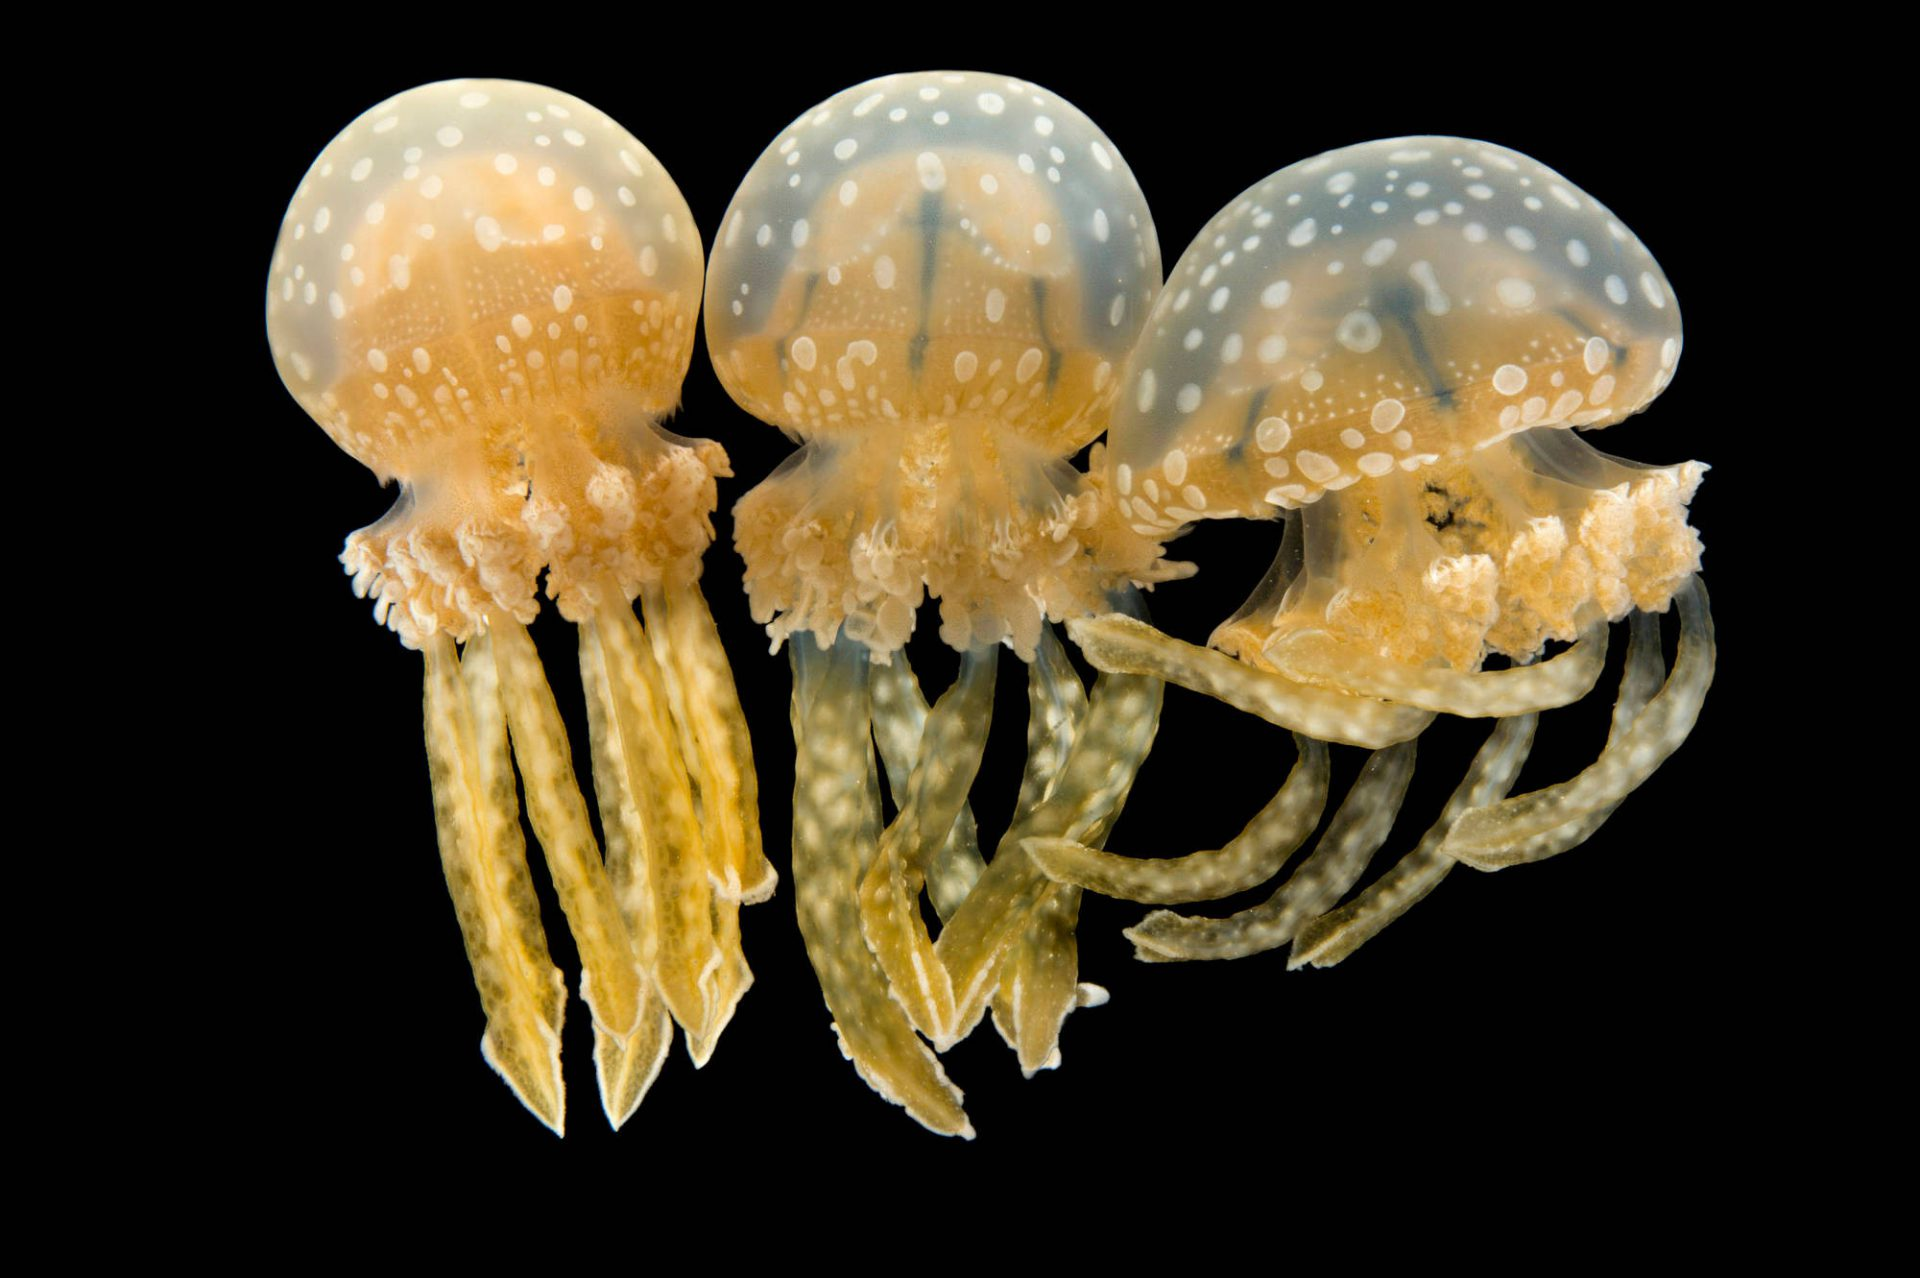 Picture of Spotted jellyfish (Mastigias papua) at the Monterey Bay Aquarium.